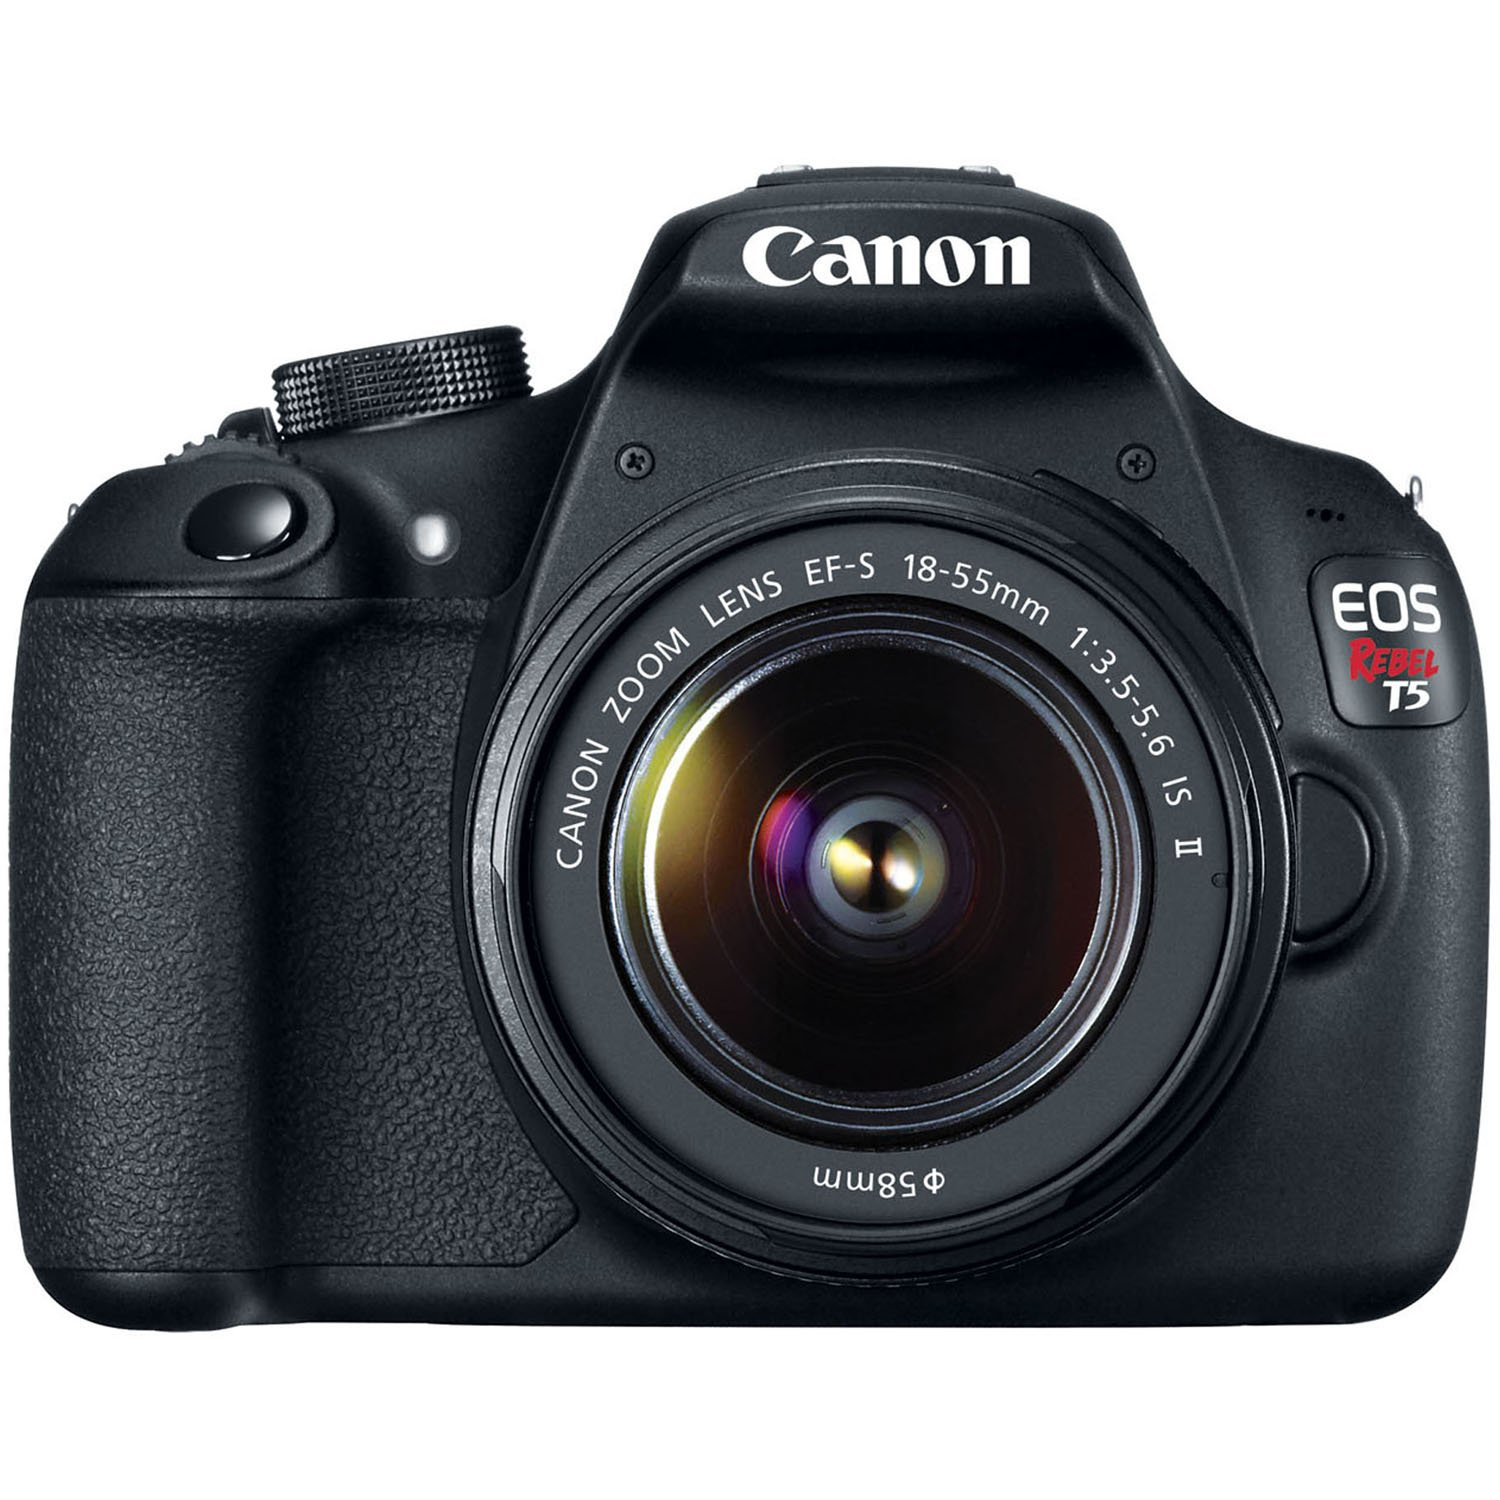 Canon-EOS-Rebel-T5-Digital-SLR-Camera-Kit-with-EF-S-18-55mm-IS-II-Lens